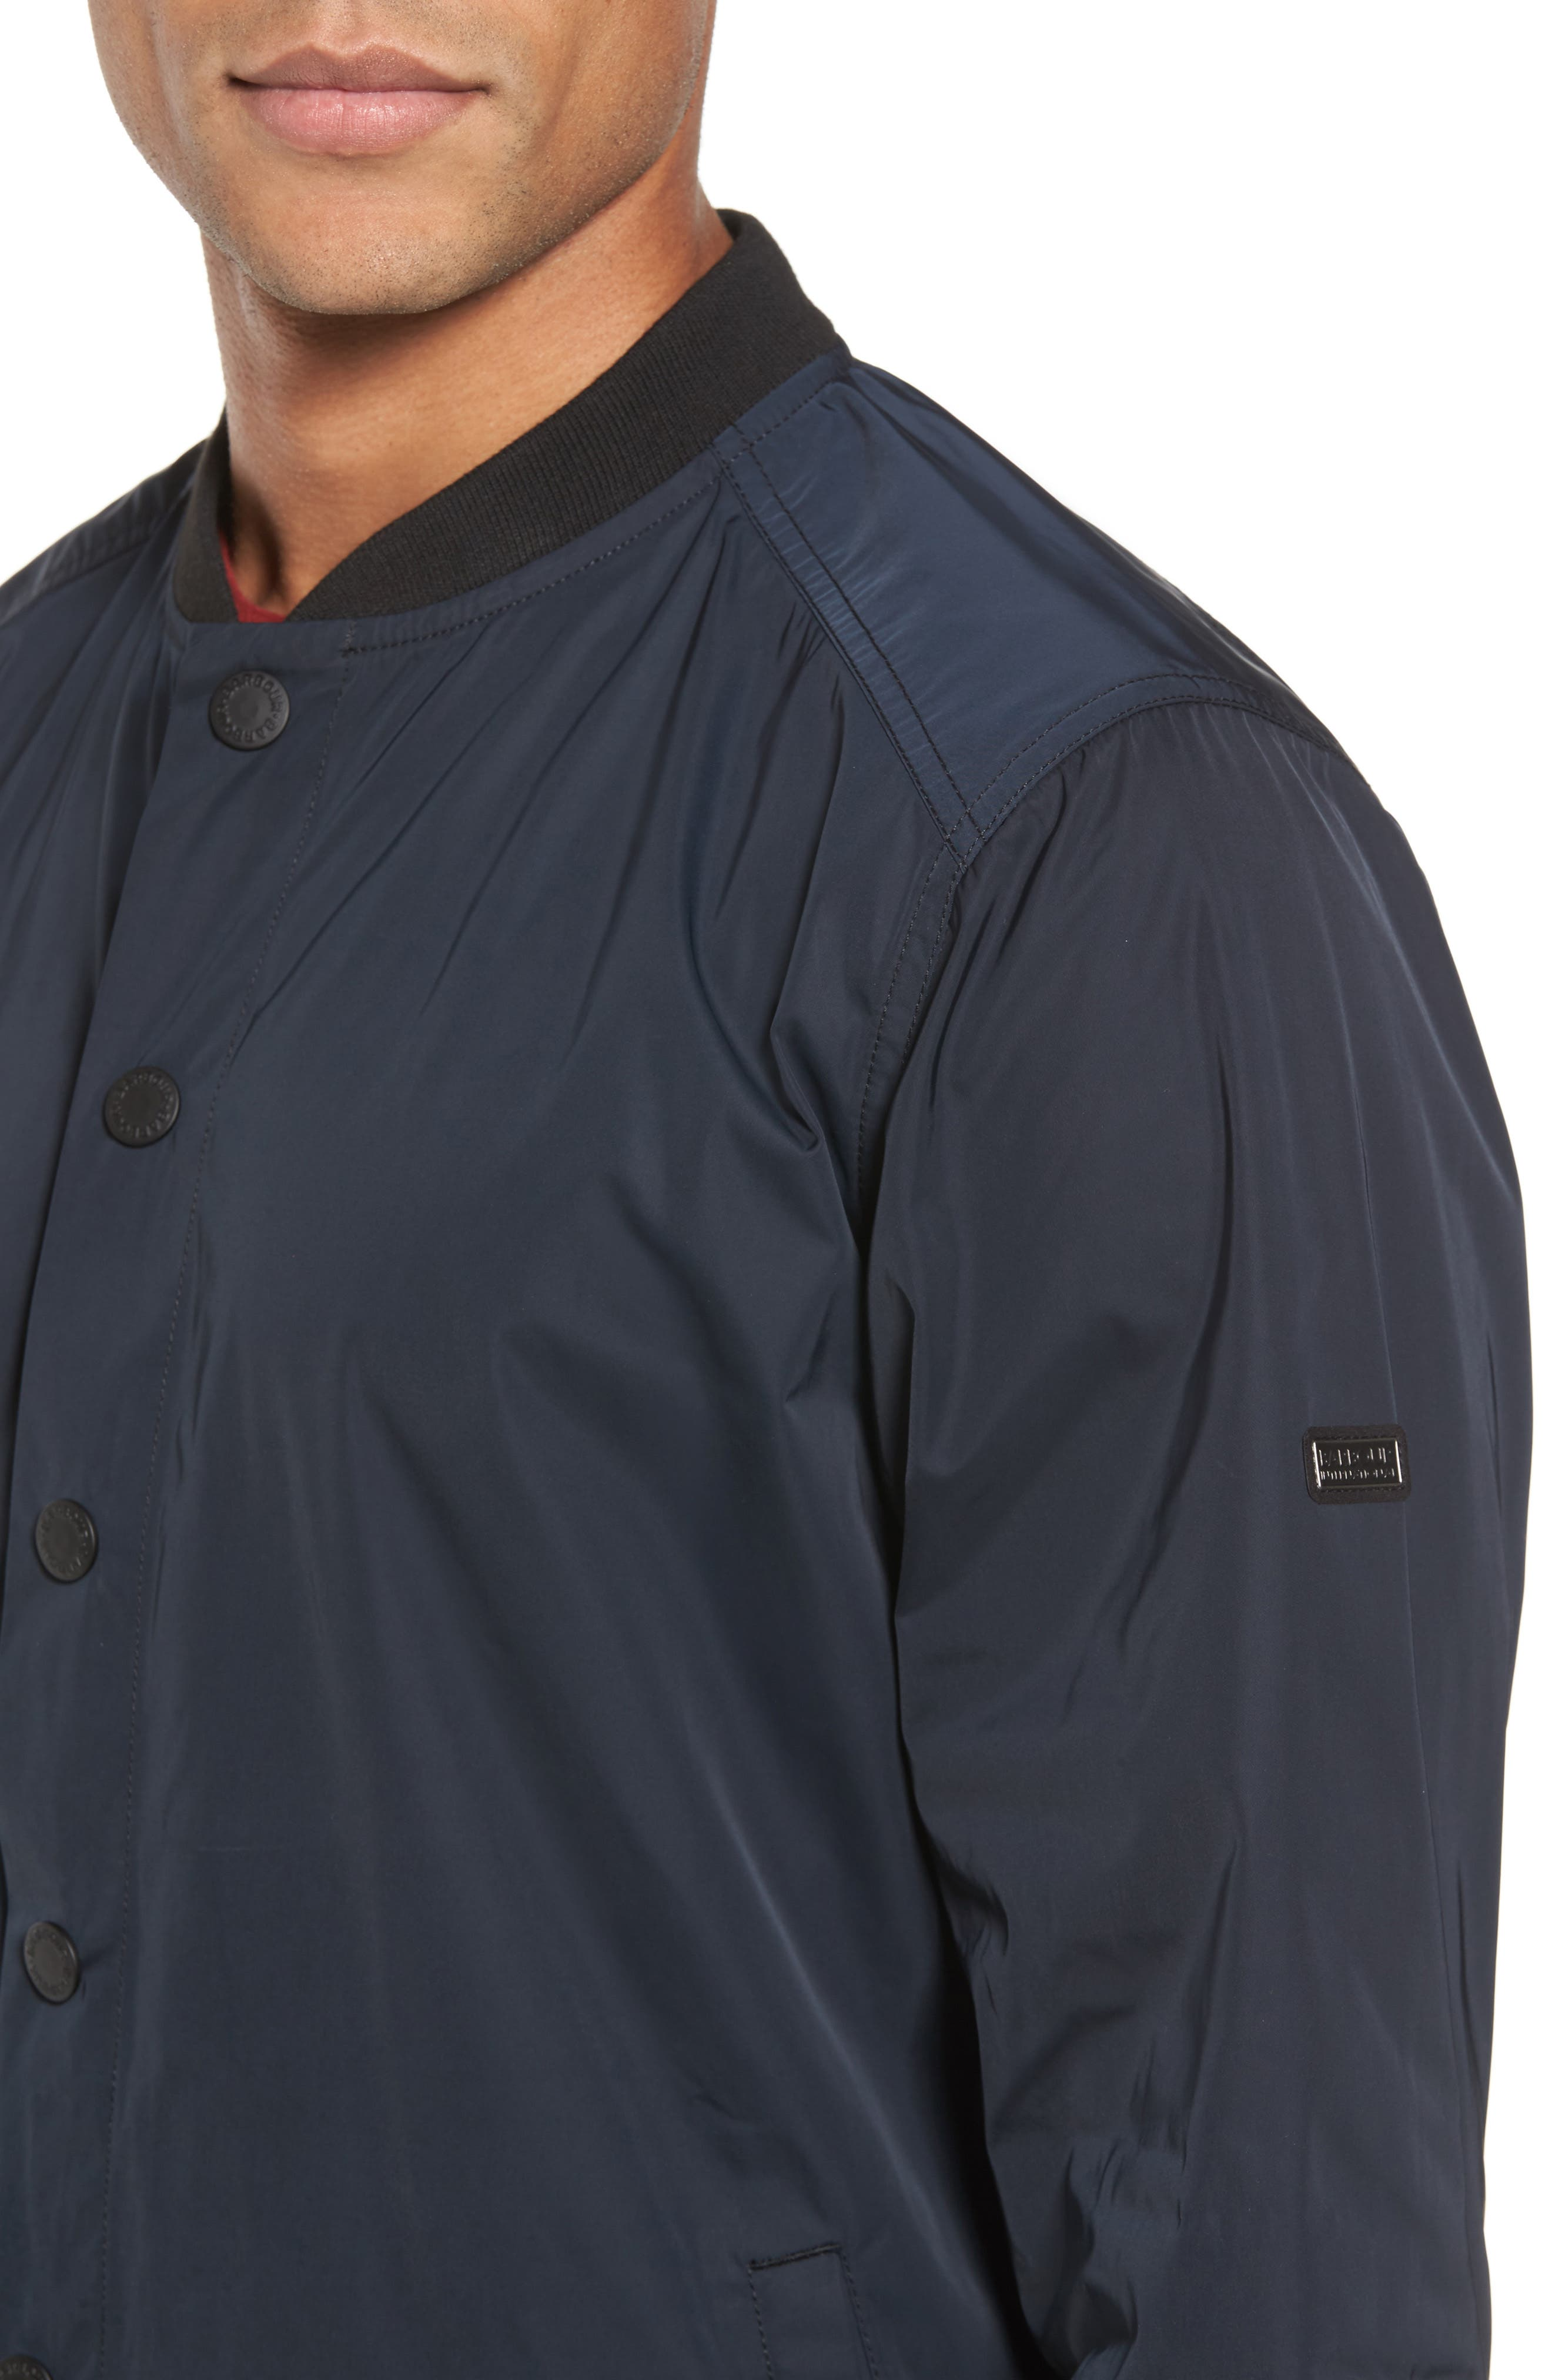 International Snap Front Overshirt,                             Alternate thumbnail 4, color,                             Black